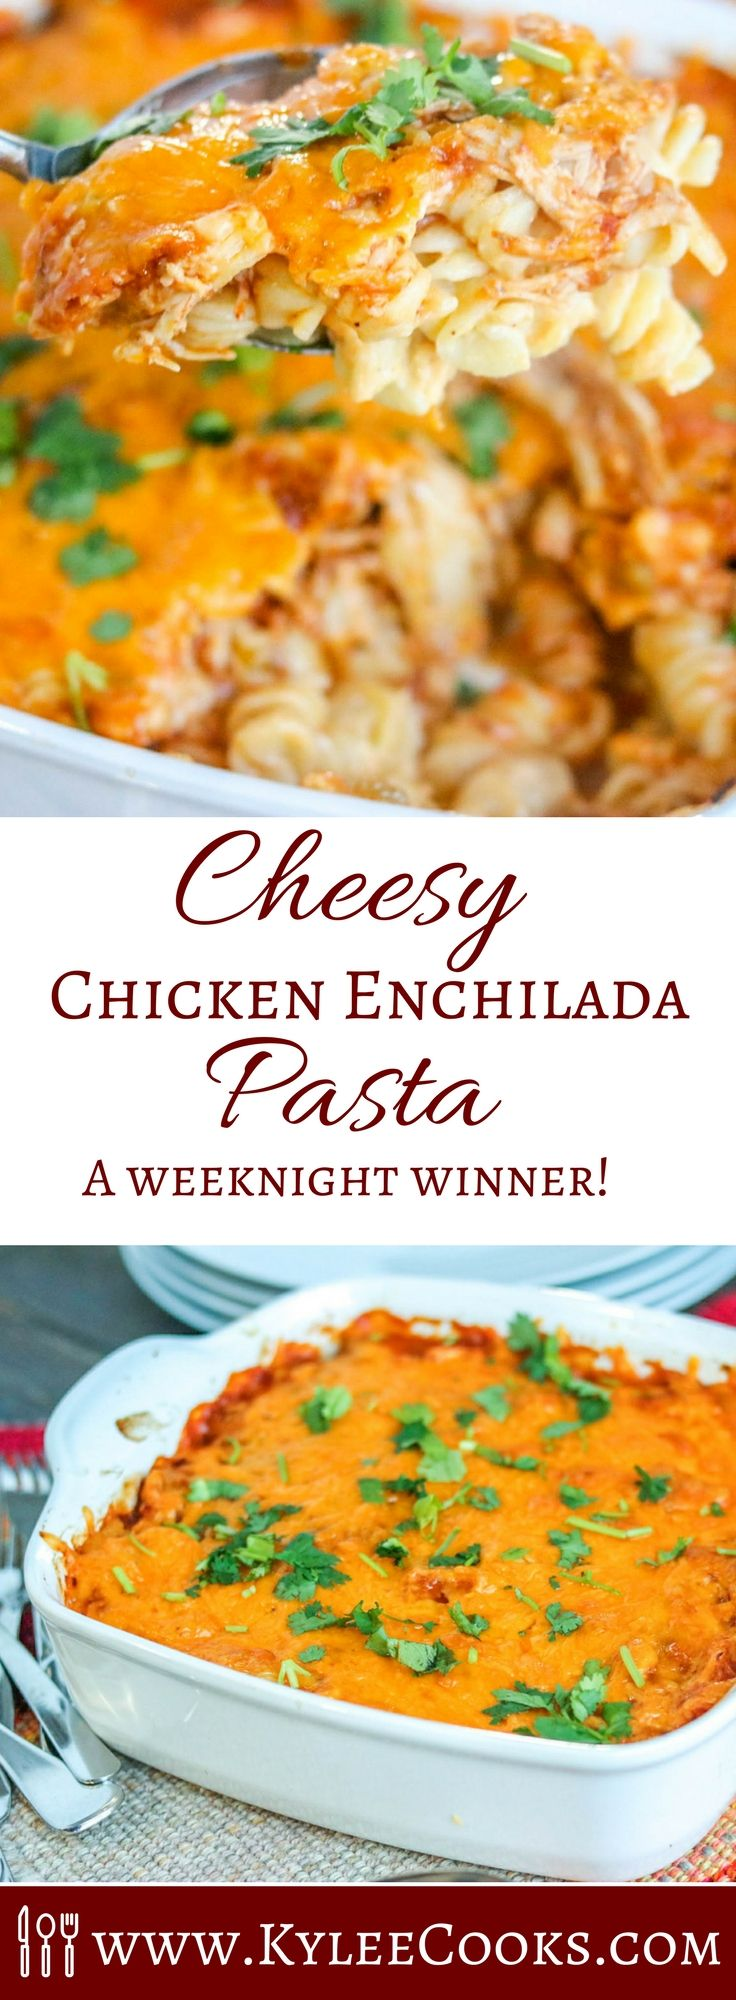 A big bowl of comfort, this Cheesy Chicken Enchilada Pasta will stick to your ribs and have everyone fight over leftovers!  via @kyleecooks